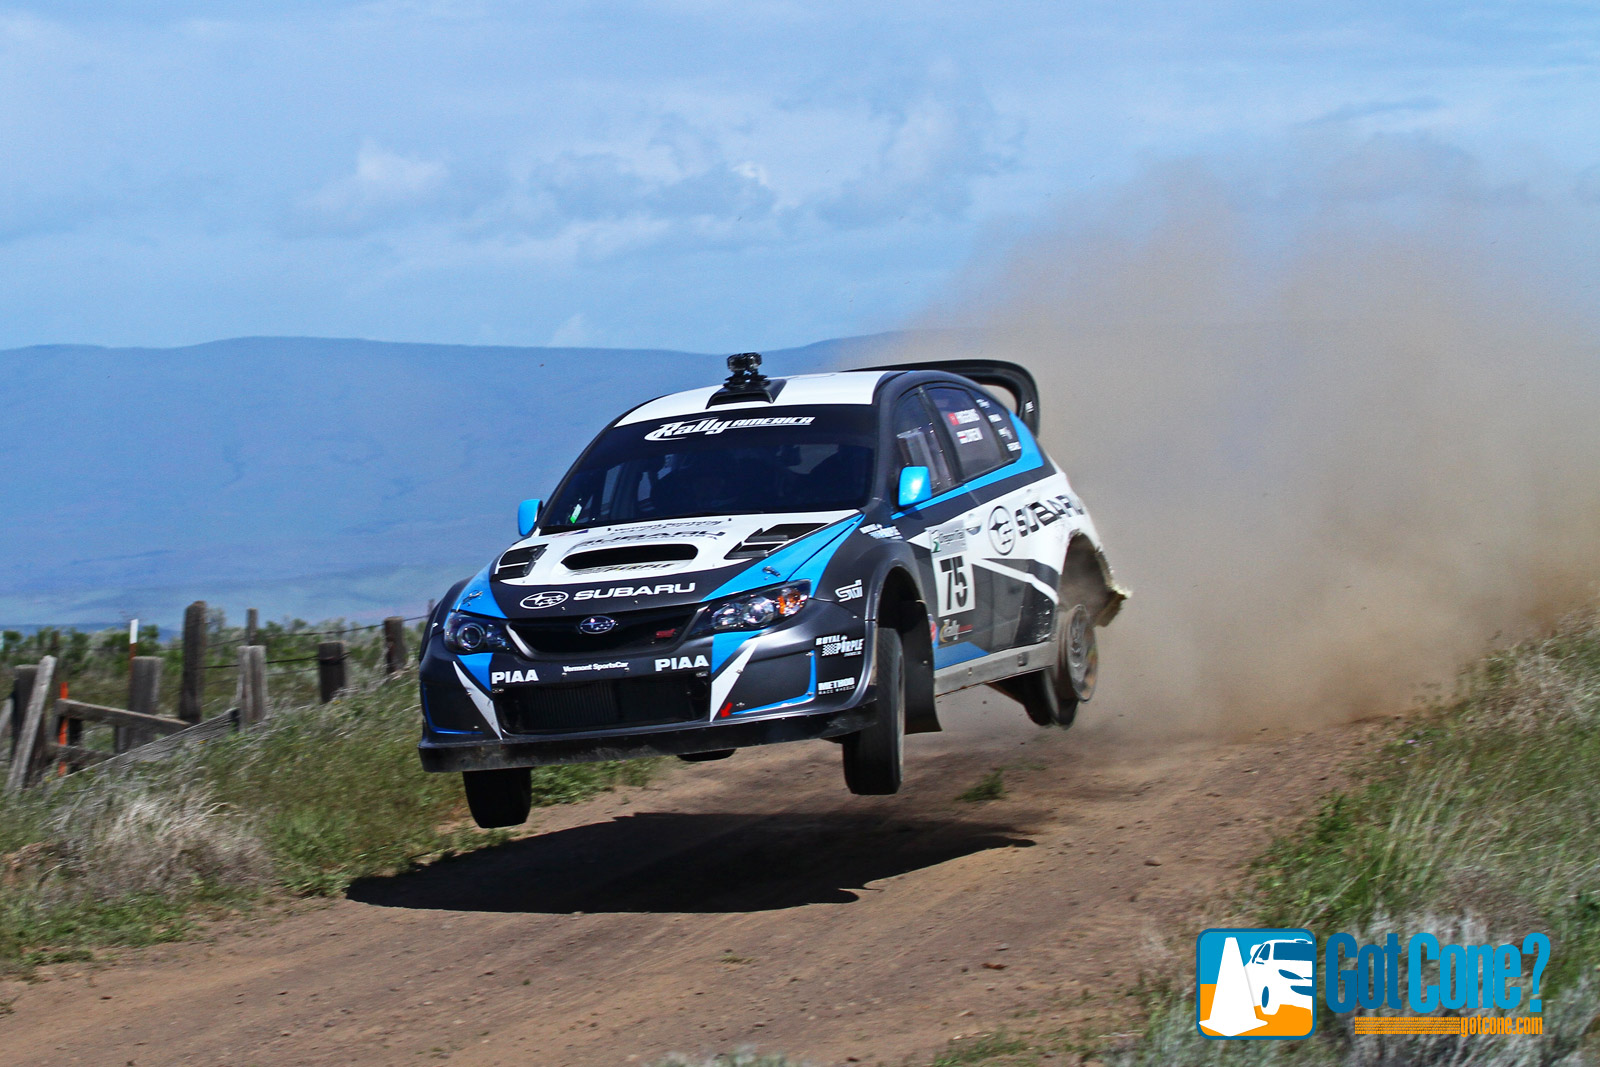 David Higgins jumps his Subaru Rally Car with only 3 tires.